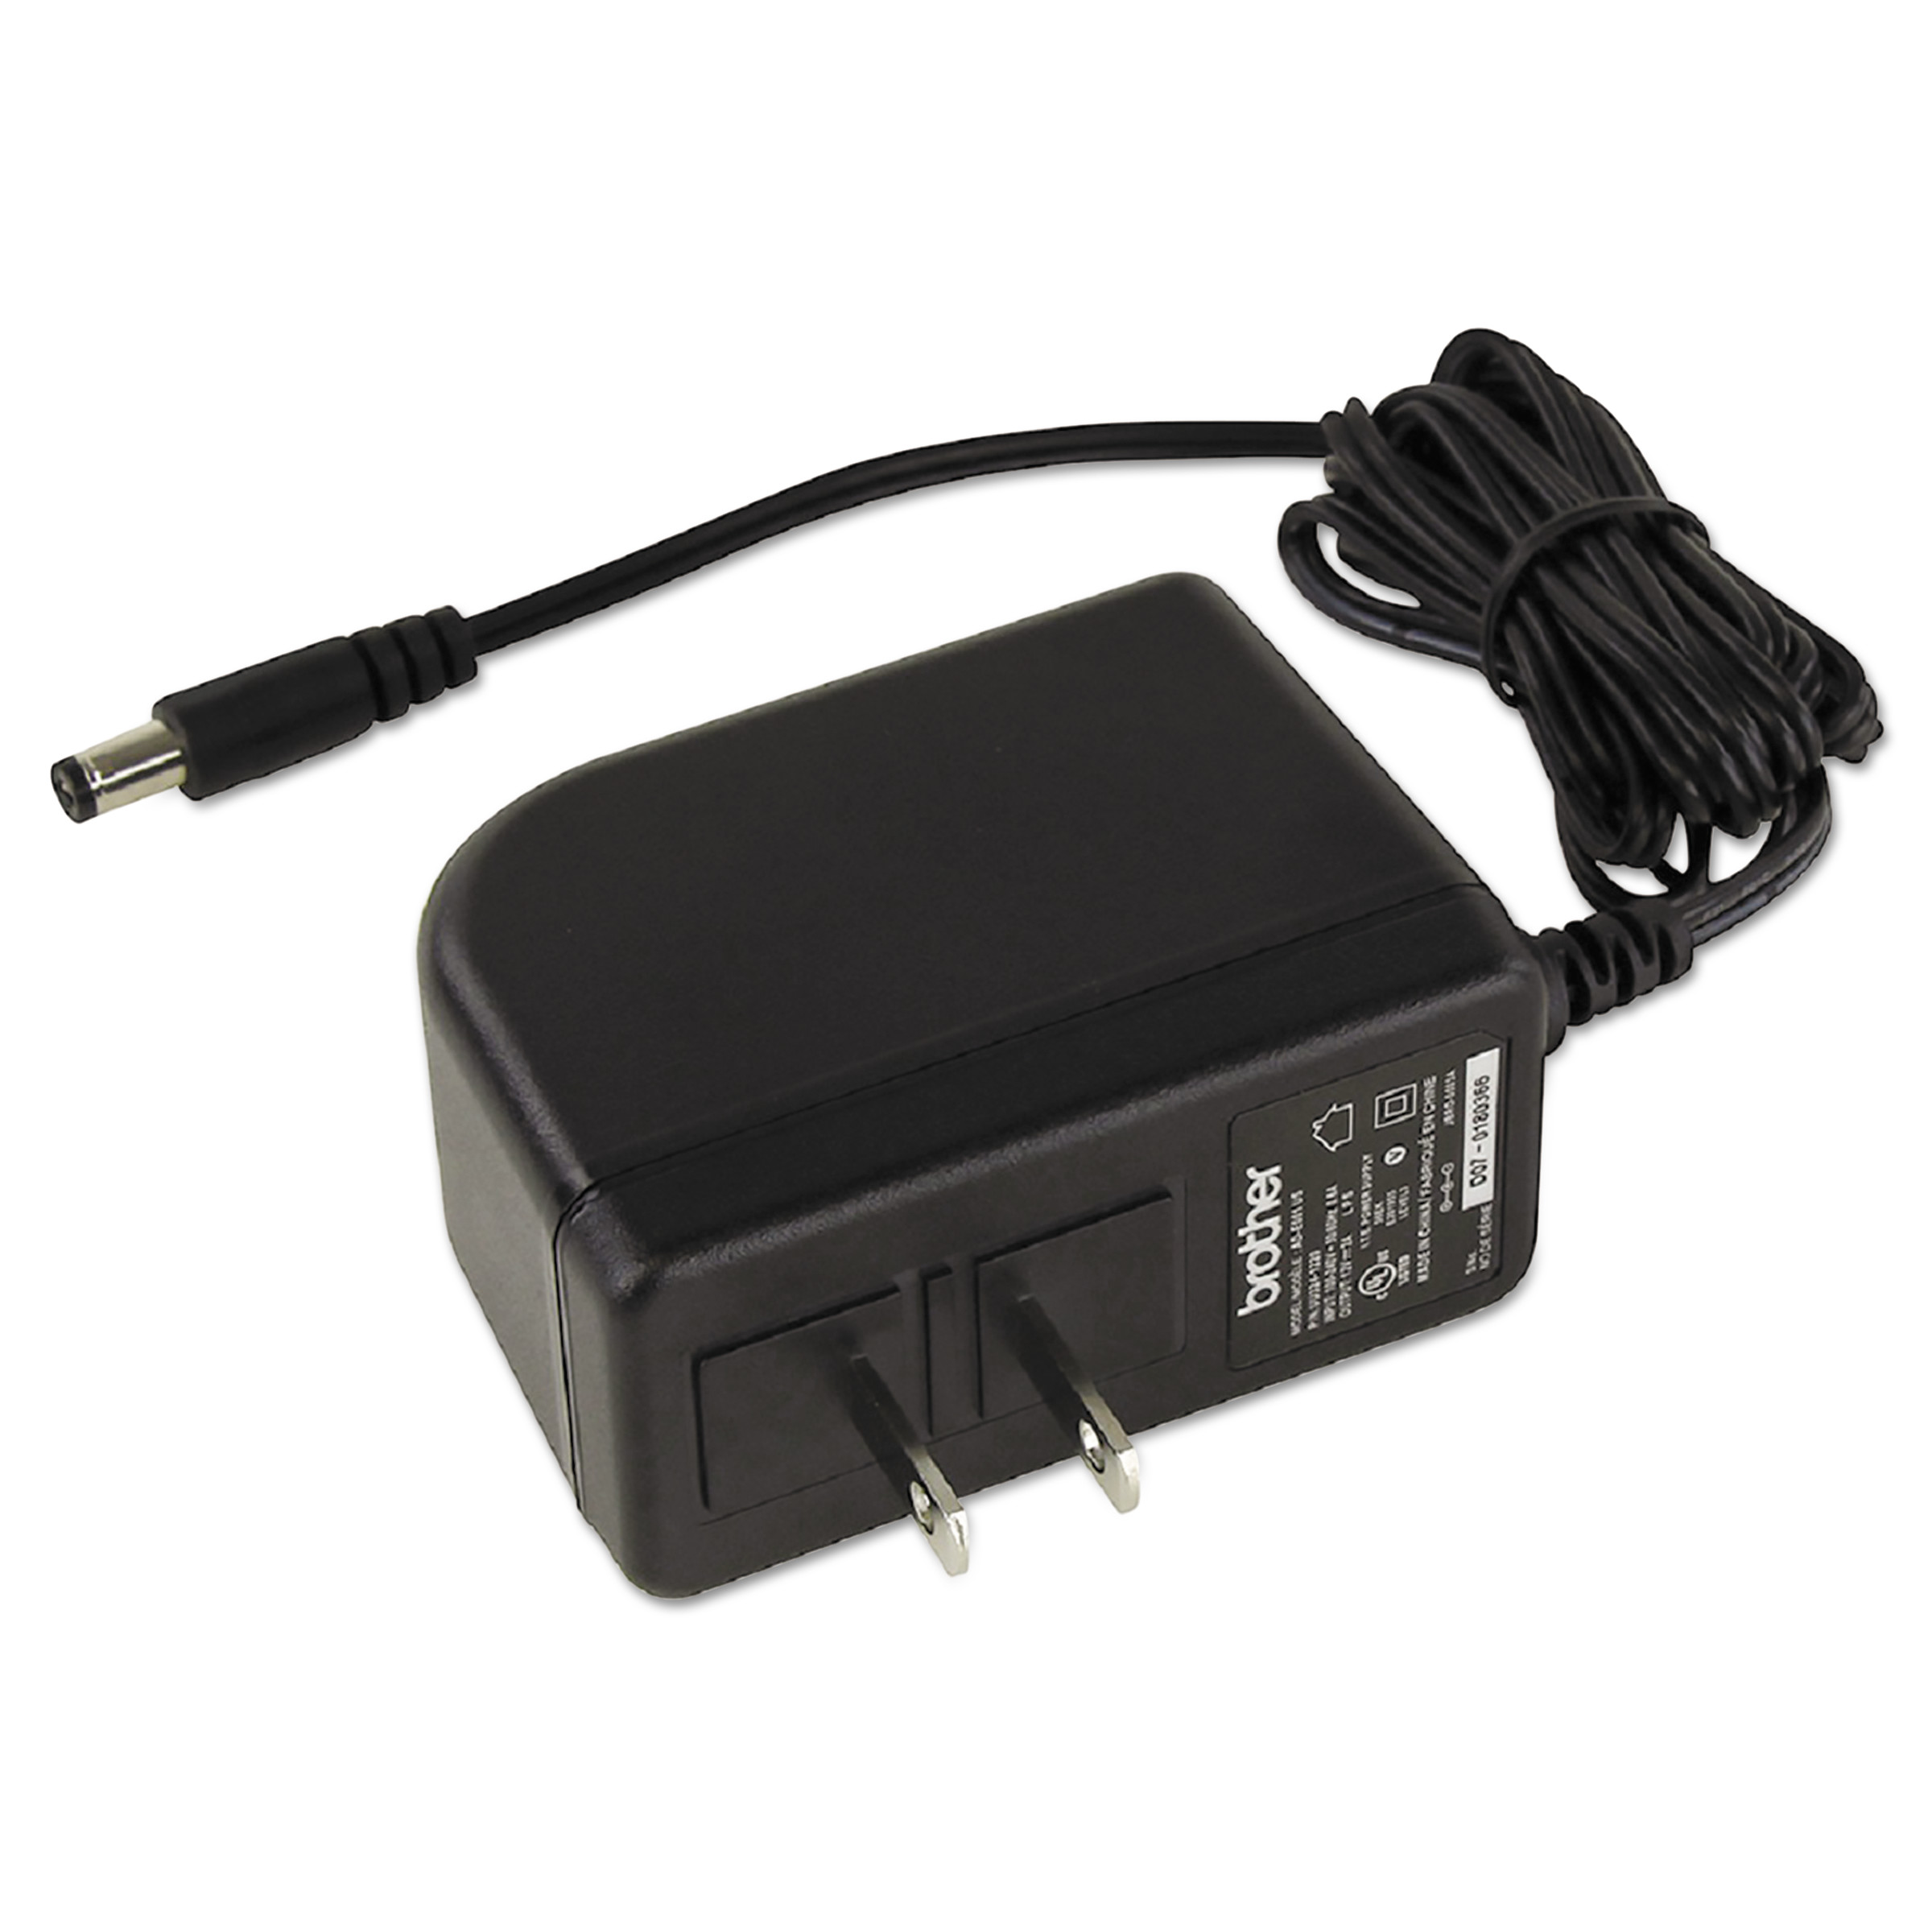 Brother AC Adapter for P-Touch Label Makers